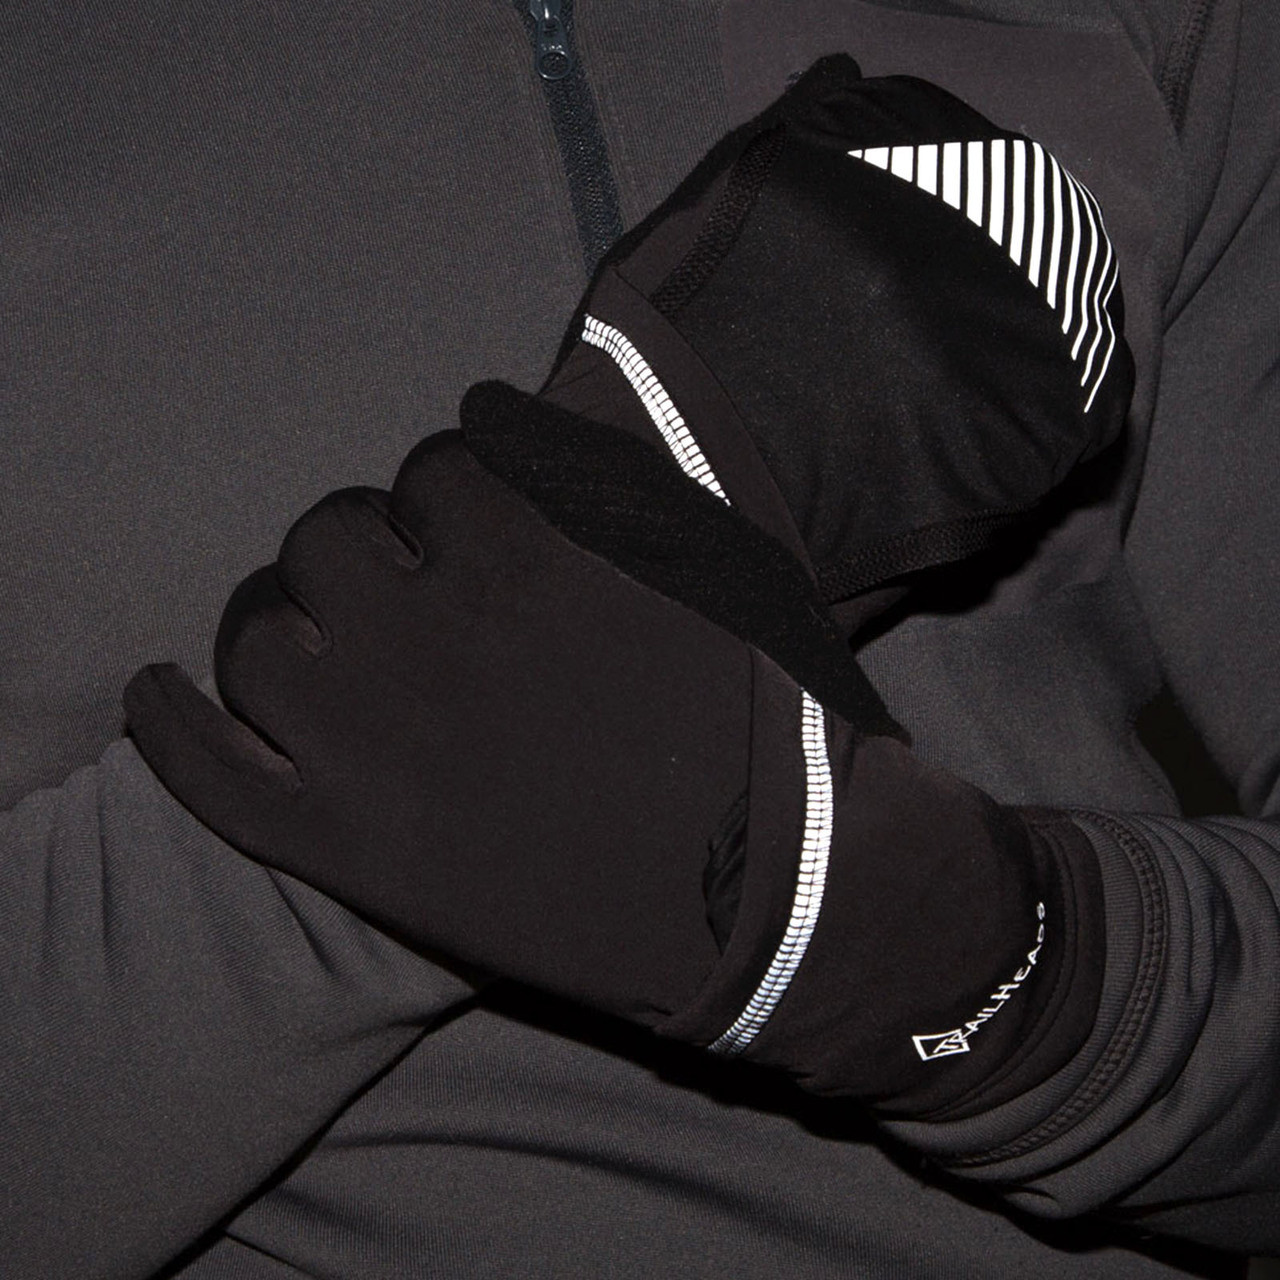 reflective design and stitching for added safety